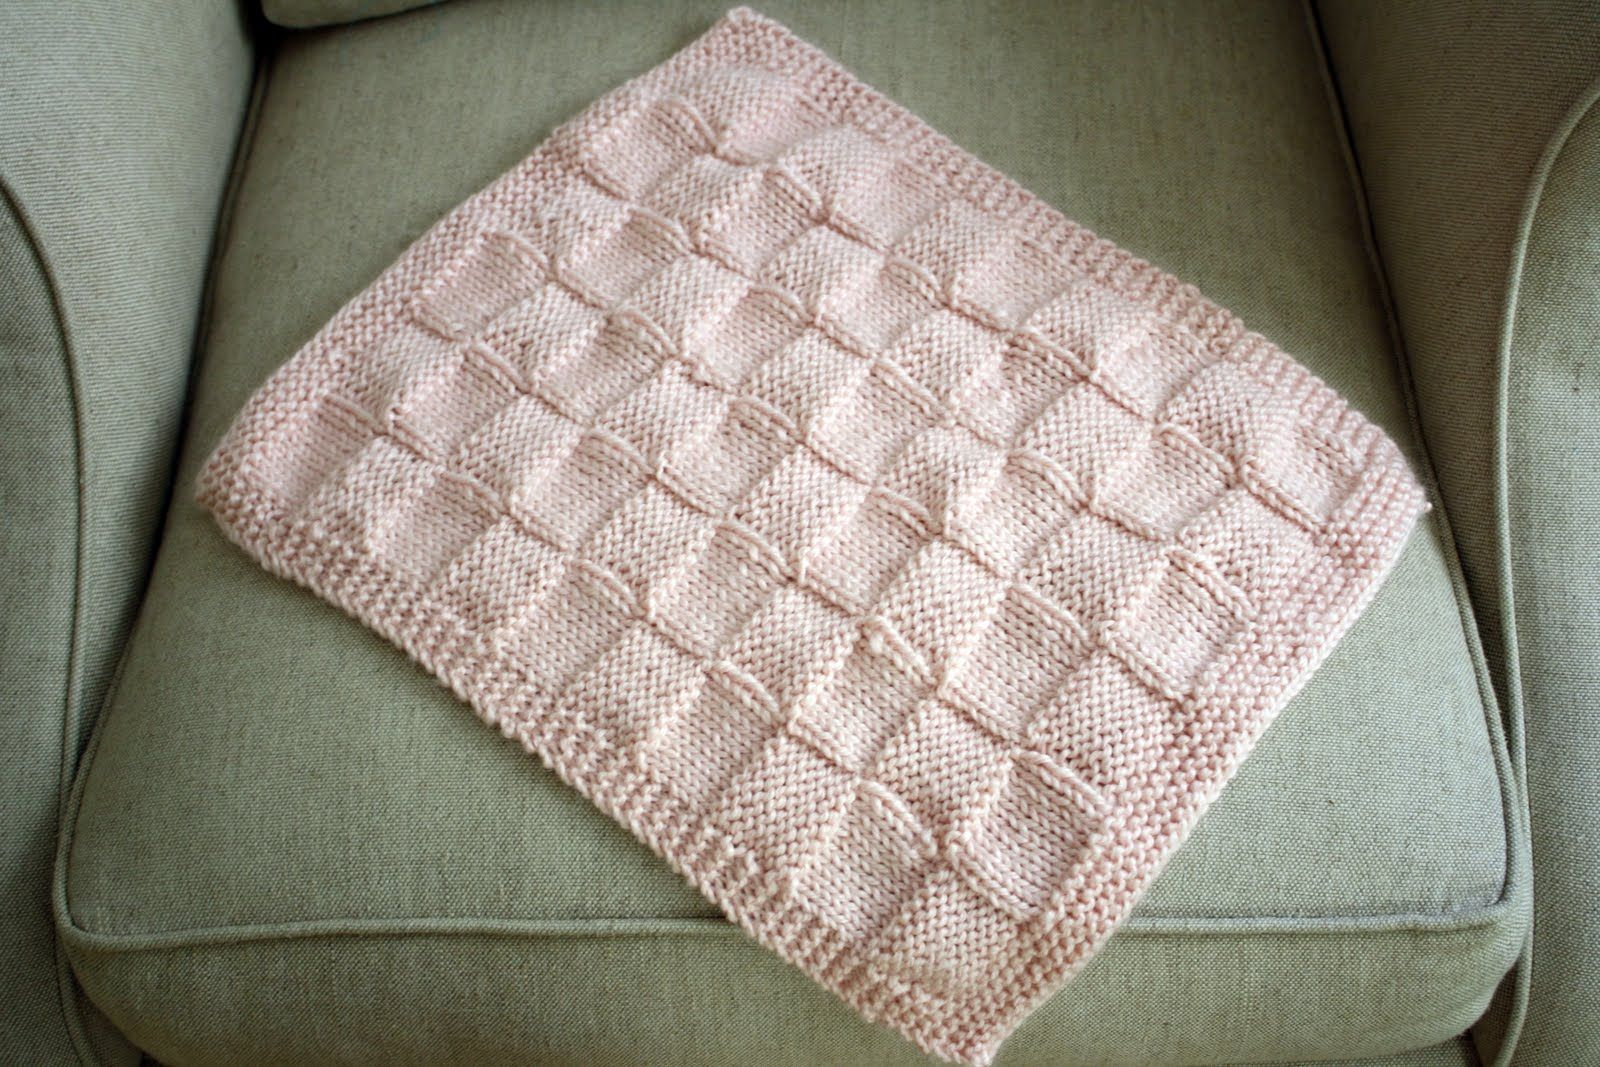 Free baby afghan knitting patterns knitted doll blanket free baby afghan knitting patterns knitted doll blanket bankloansurffo Image collections